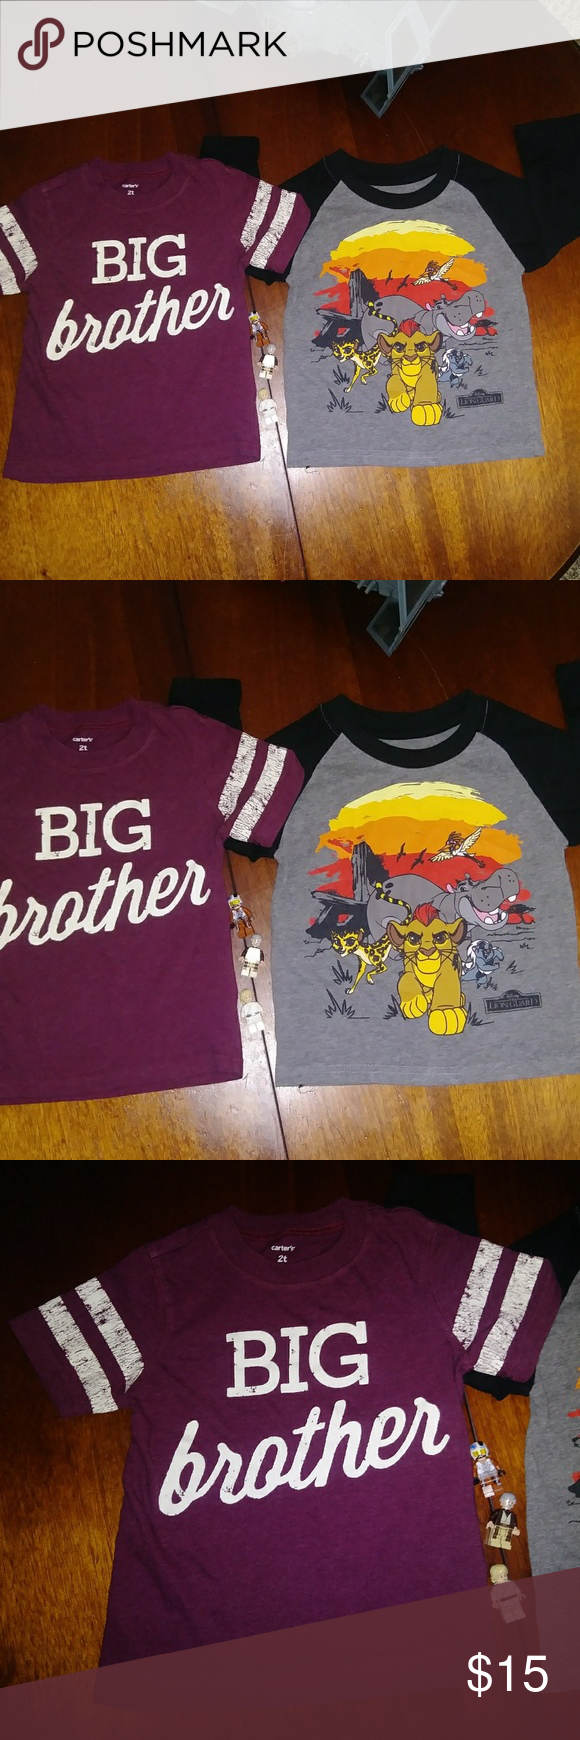 3f8c42b53c069 Boys 2T Toddler Shirt Bundle Carter's Big Brother 2 cute shirts in this  bundle! Perfect for your little one. Make an offer. Preloved.